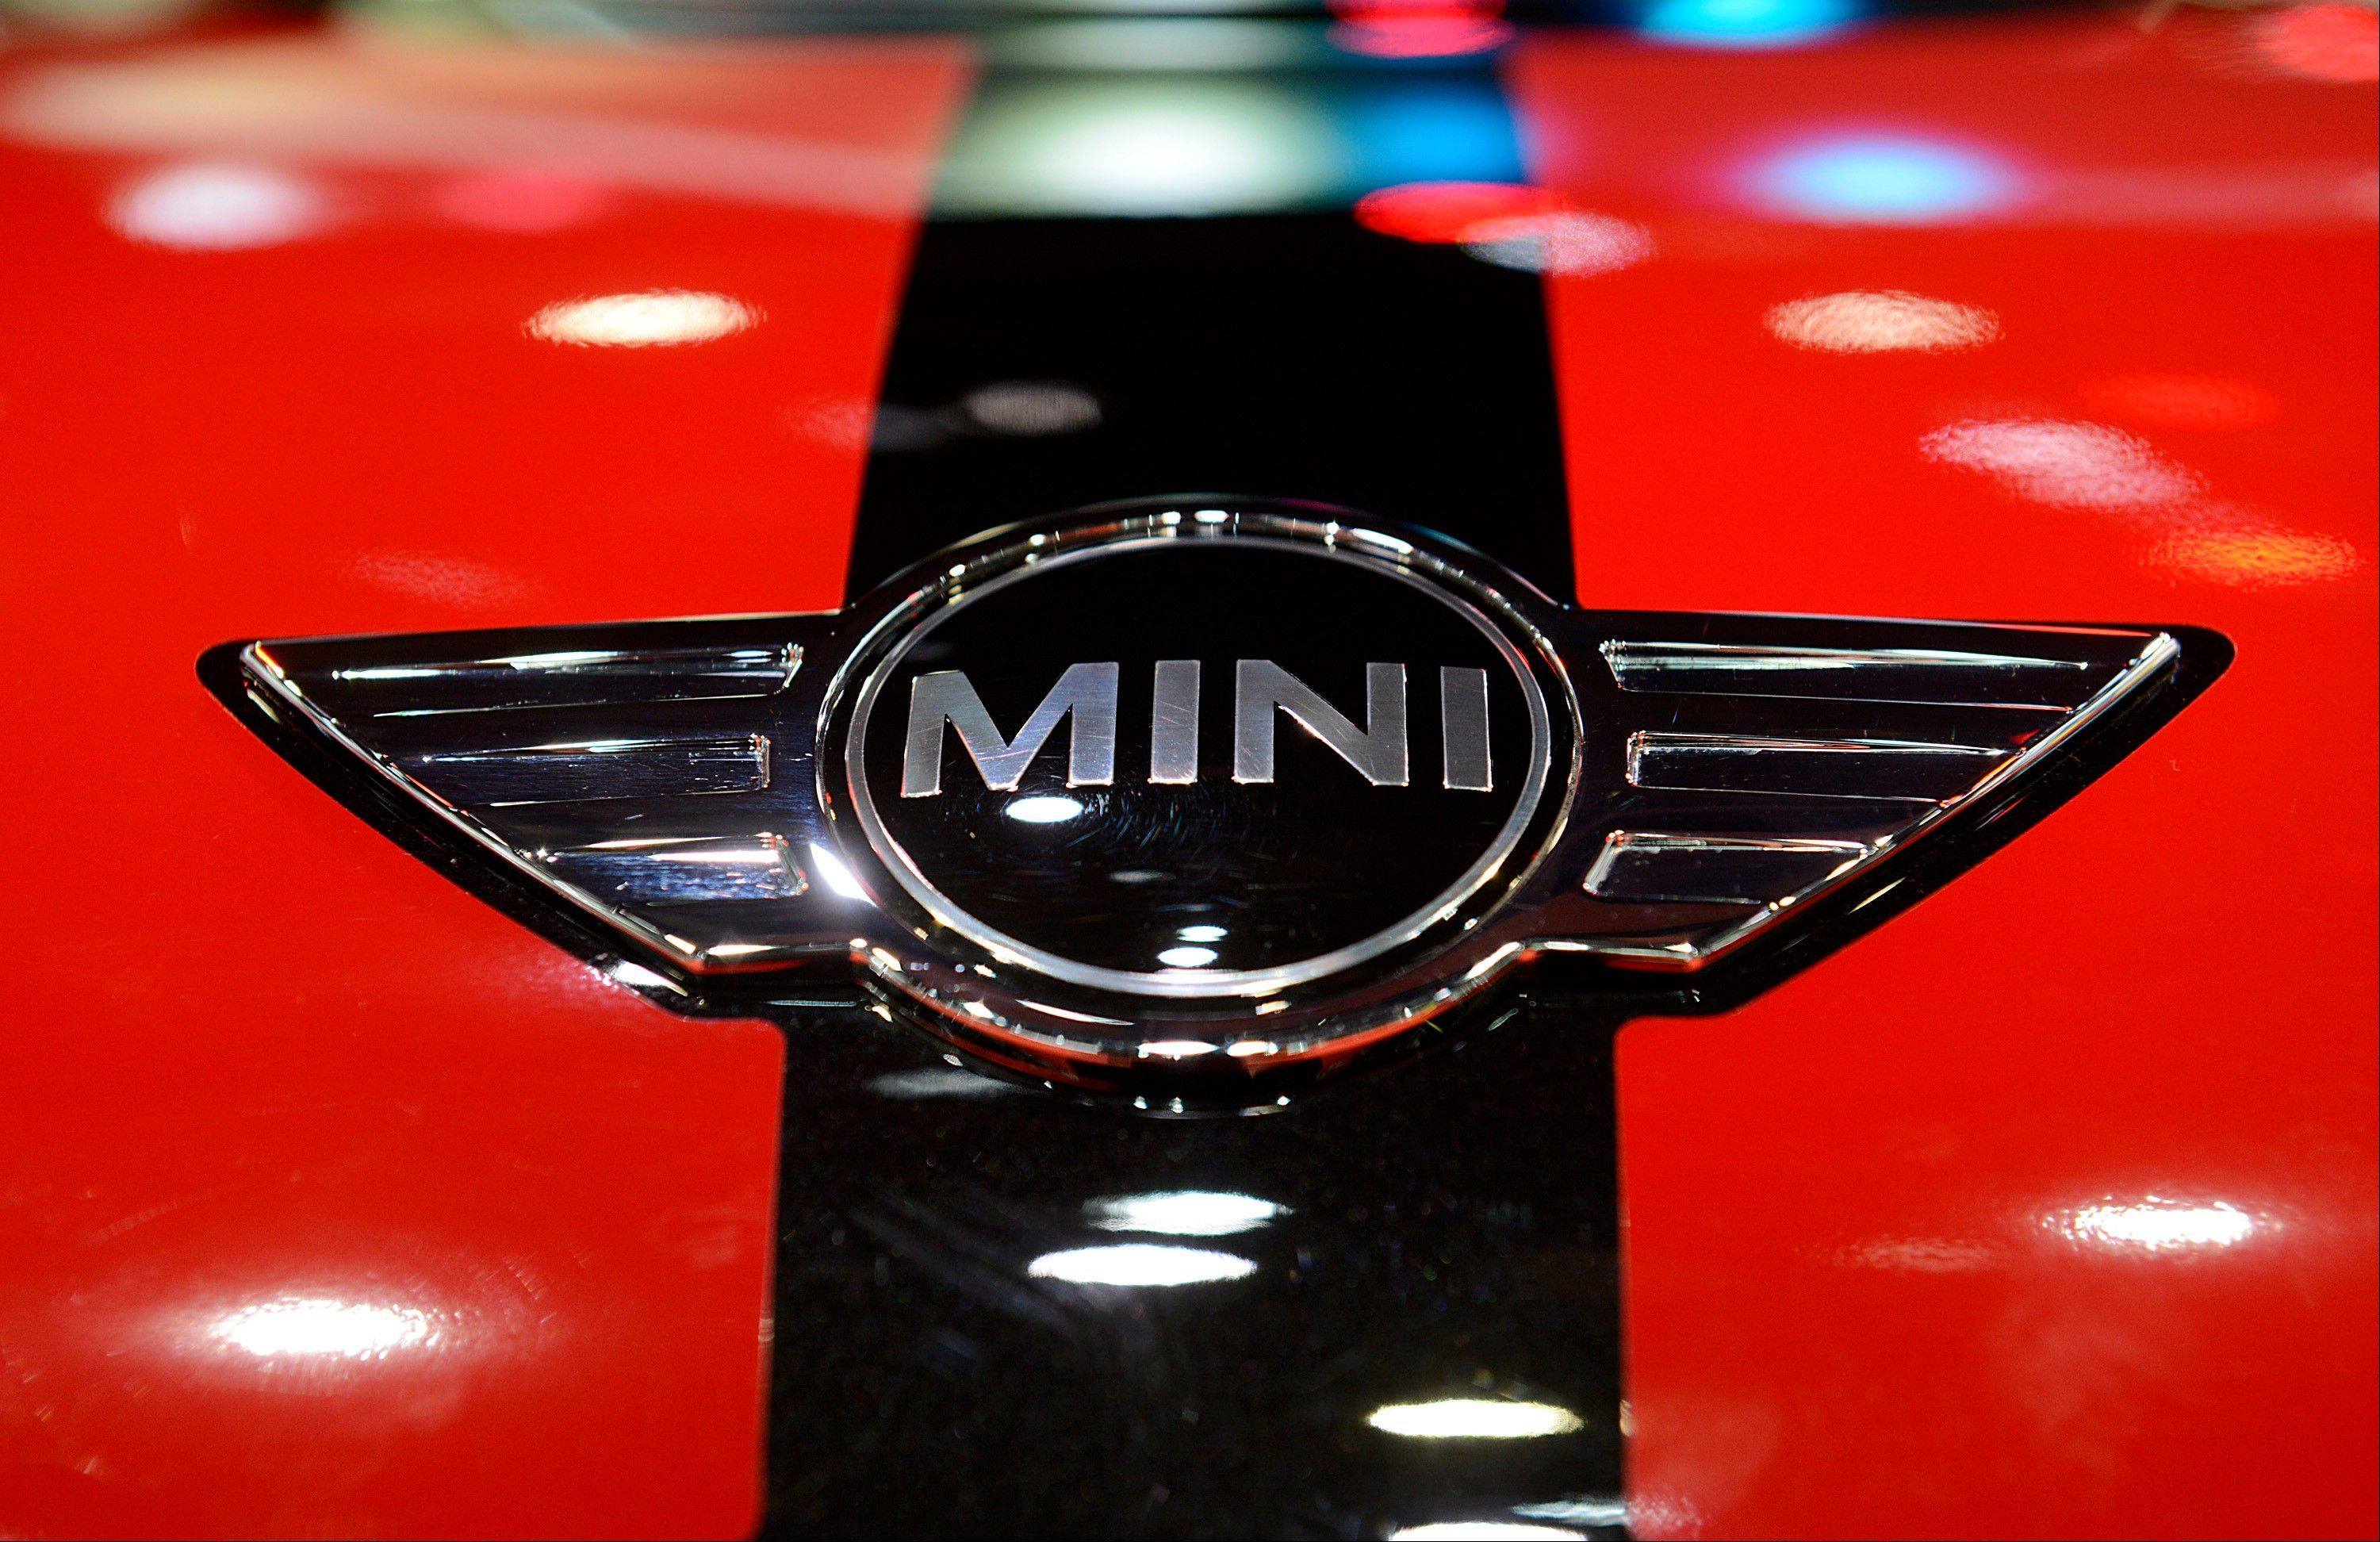 The Bayerische Motoren Werke AG (BMW) Mini Cooper logo is seen on a vehicle during the 2013 North American International Auto Show (NAIAS) in Detroit, Michigan, U.S., on Tuesday, Jan. 15, 2013. The Detroit auto show runs through Jan. 27 and will display over 500 vehicles, representing the most innovative designs in the world.